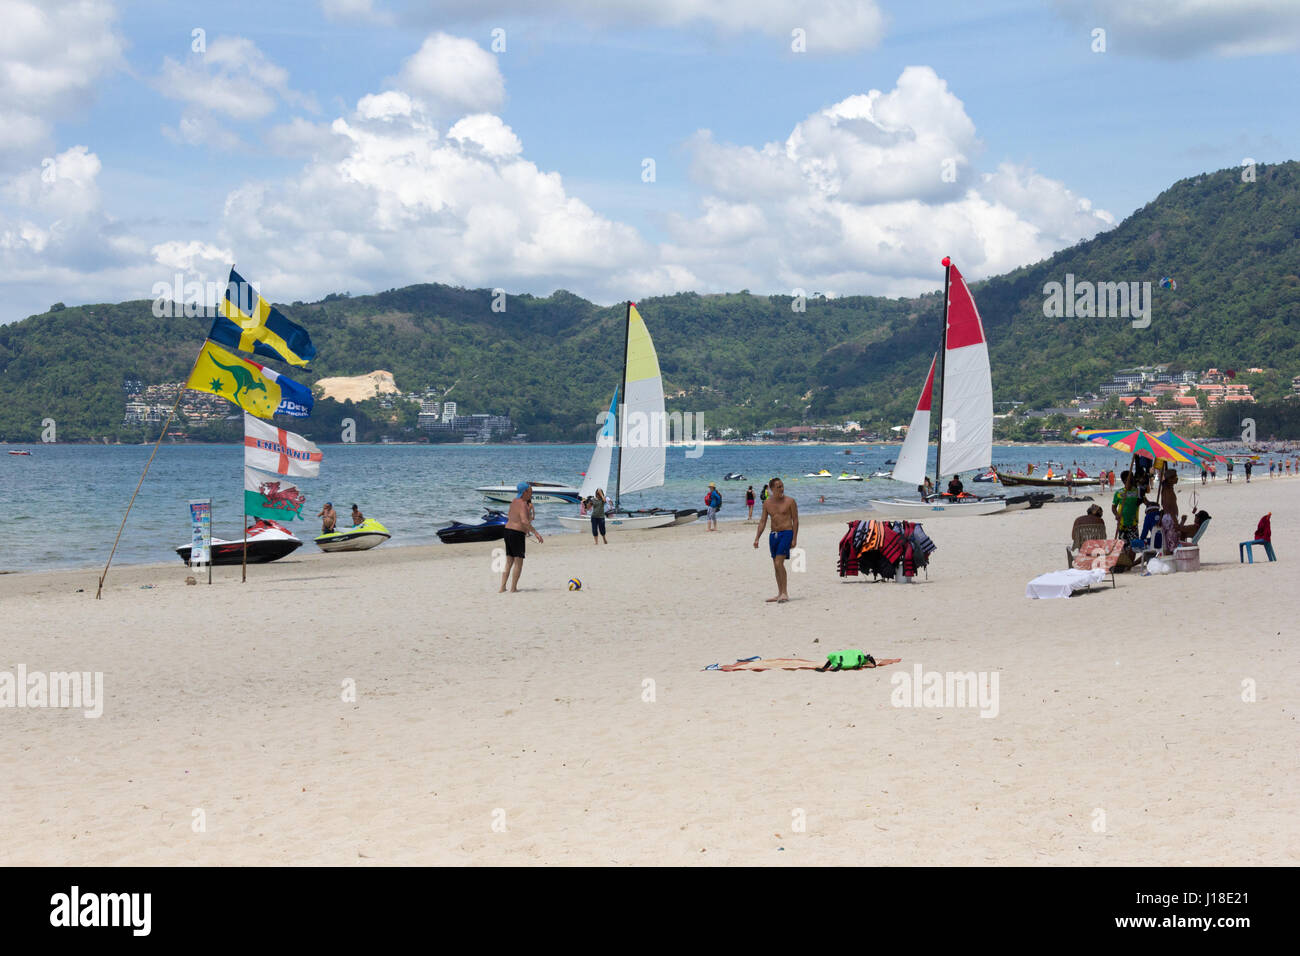 Watersport activities on Patong beach, Phuket, Thailand - Stock Image